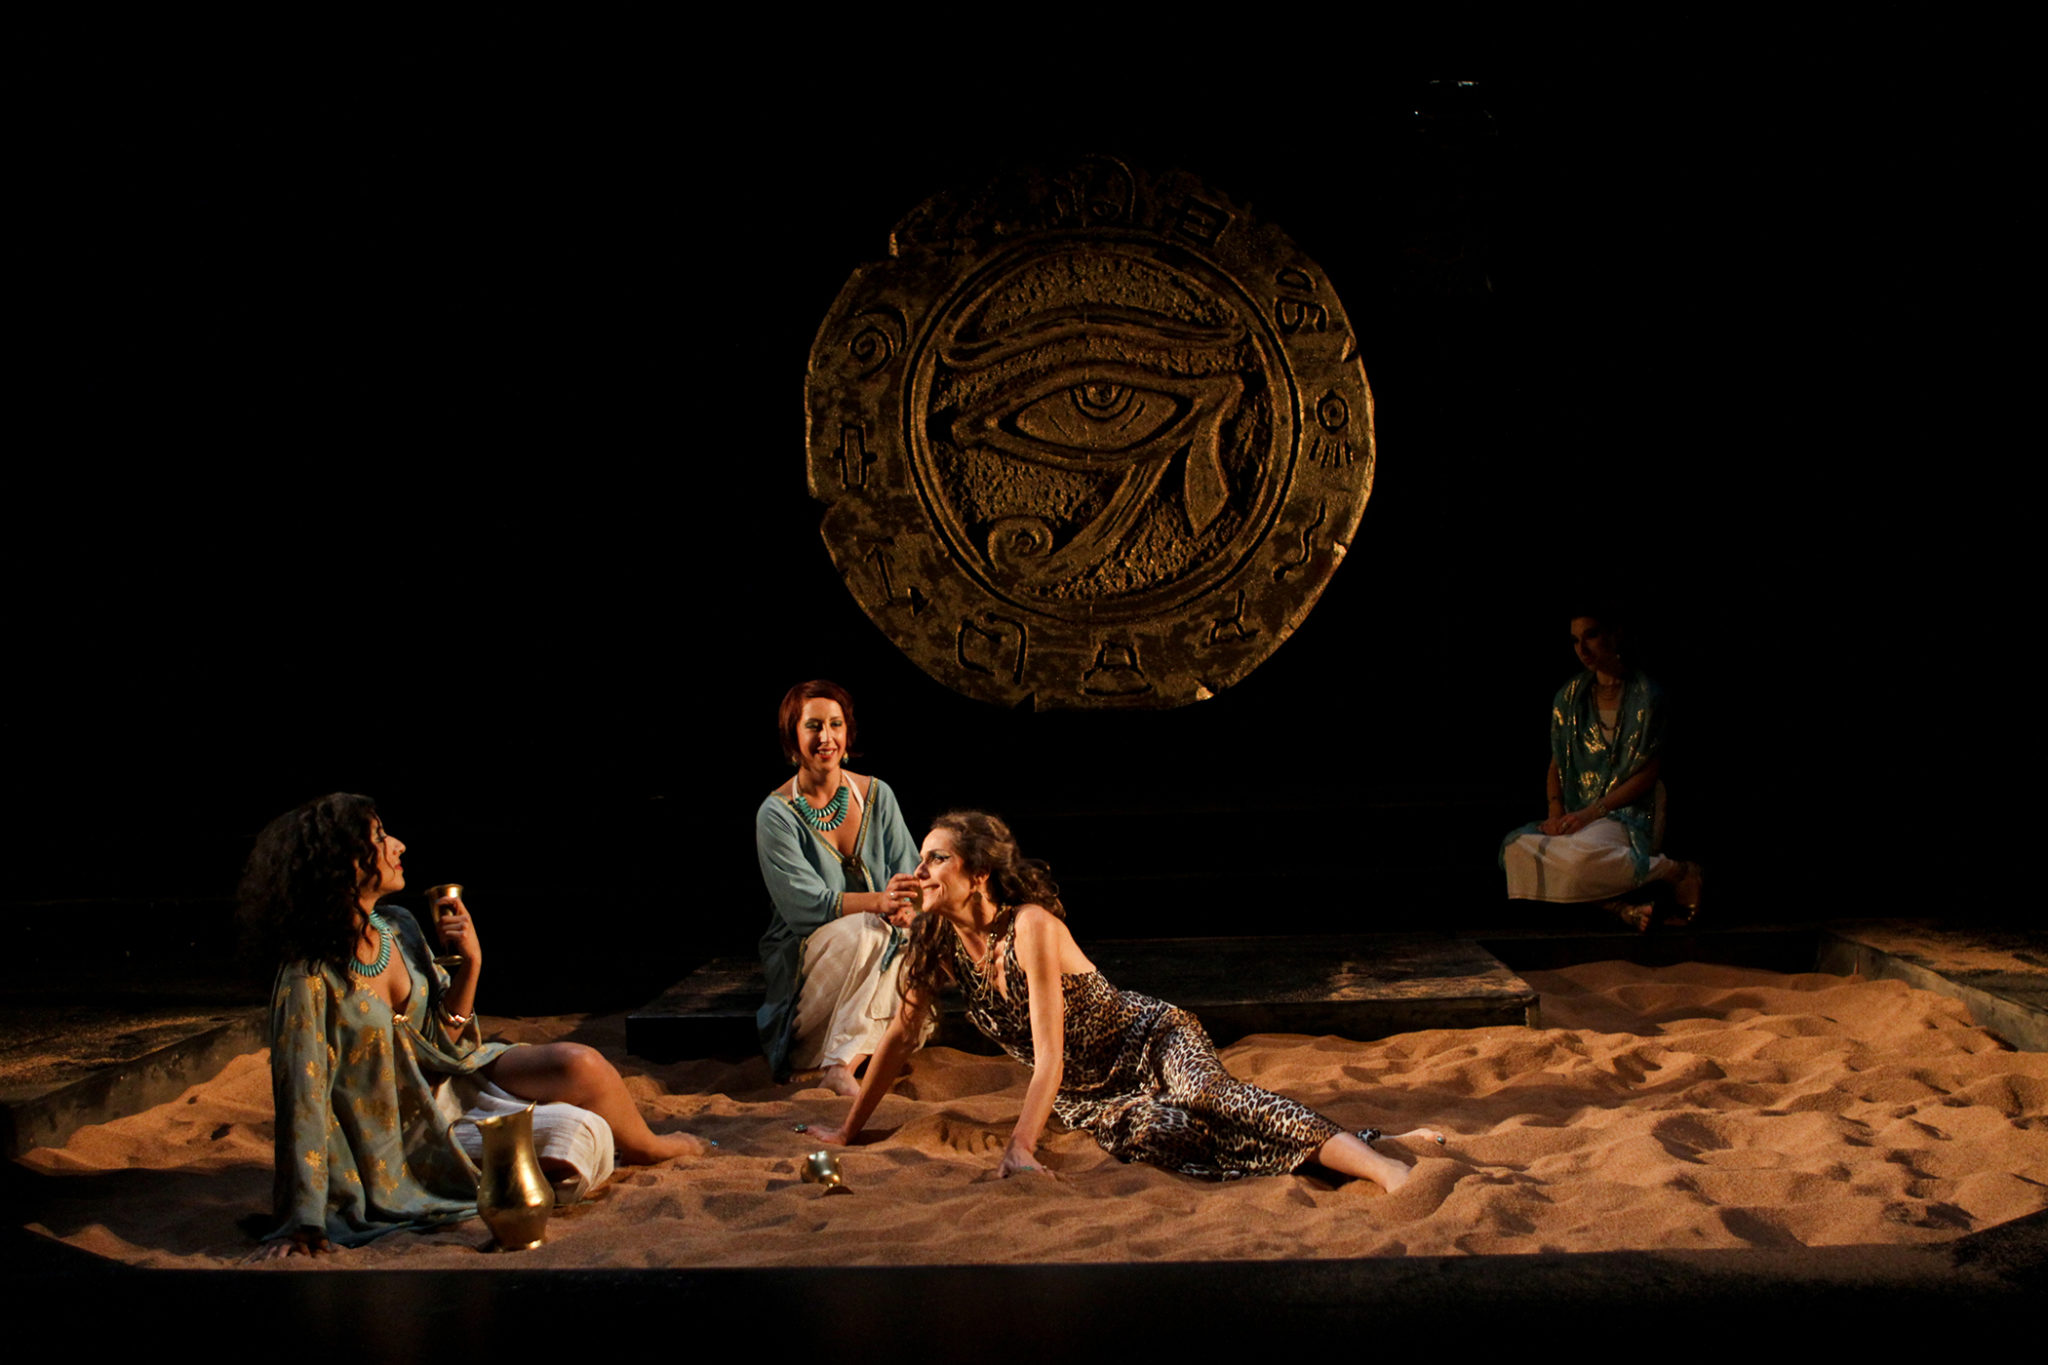 """Allison Strickland as Iras, Terri Weagant as Charmian, and Amy Thone as Cleopatra in Seattle Shakespeare Company's 2012 production of """"Antony and Cleopatra."""" Photo by John Ulman."""